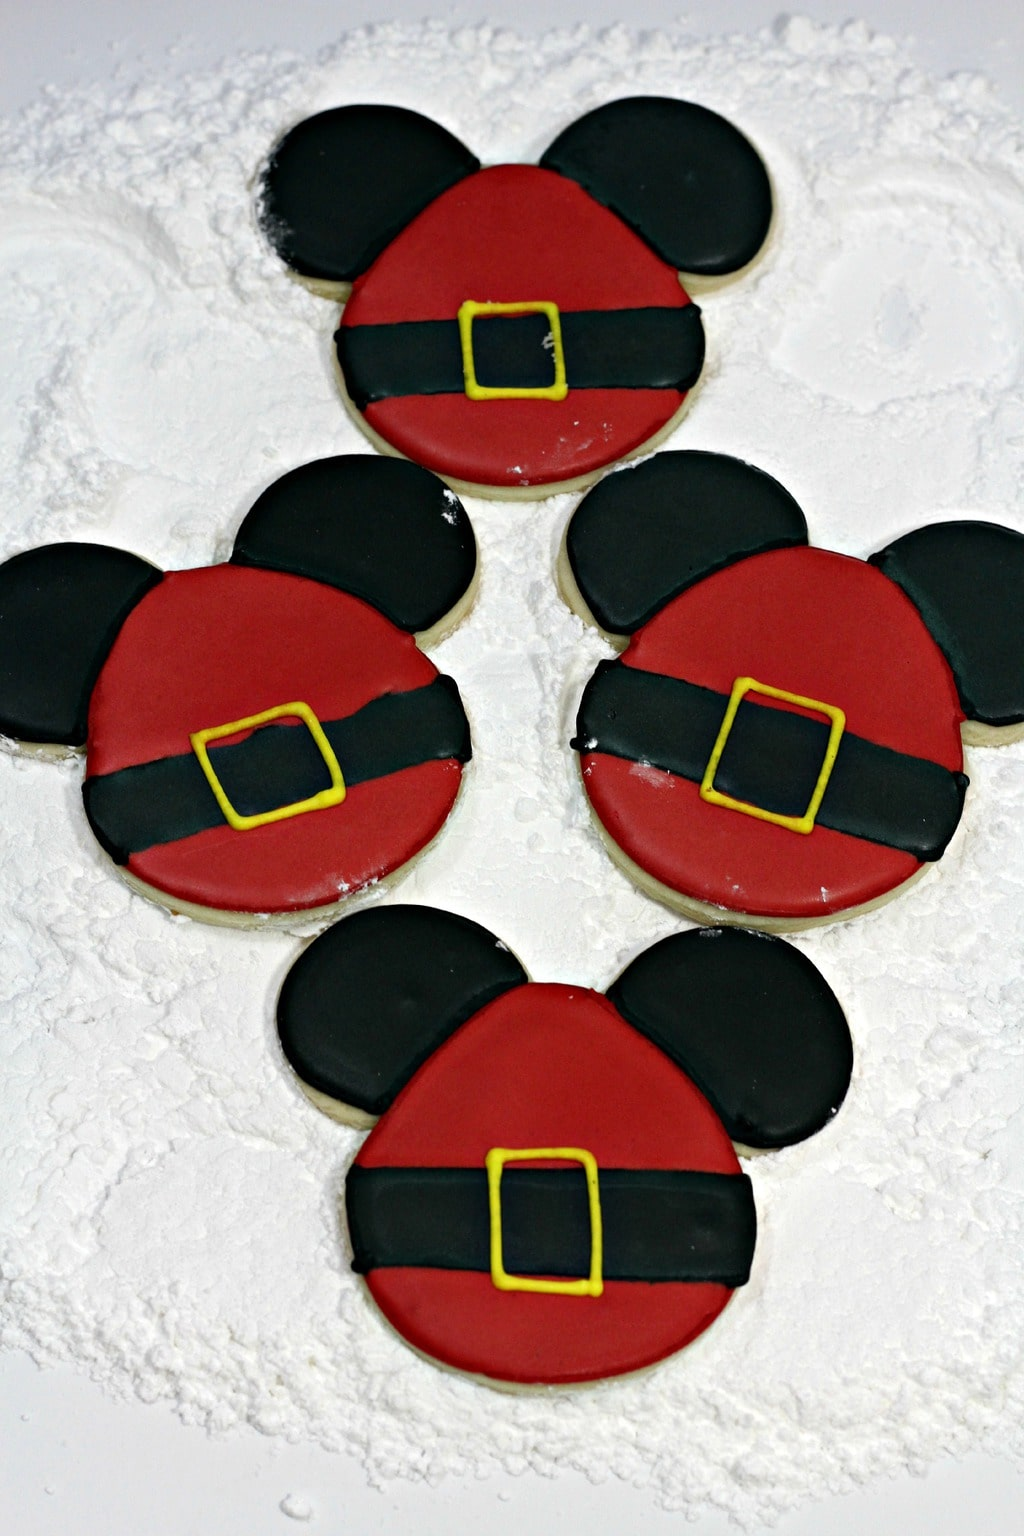 This recipe for Santa Mickey Sugar Cookies is perfect for a class party dessert! Get the kids to head to the kitchen with you to do some holiday baking! It's such a fun activity to do together.